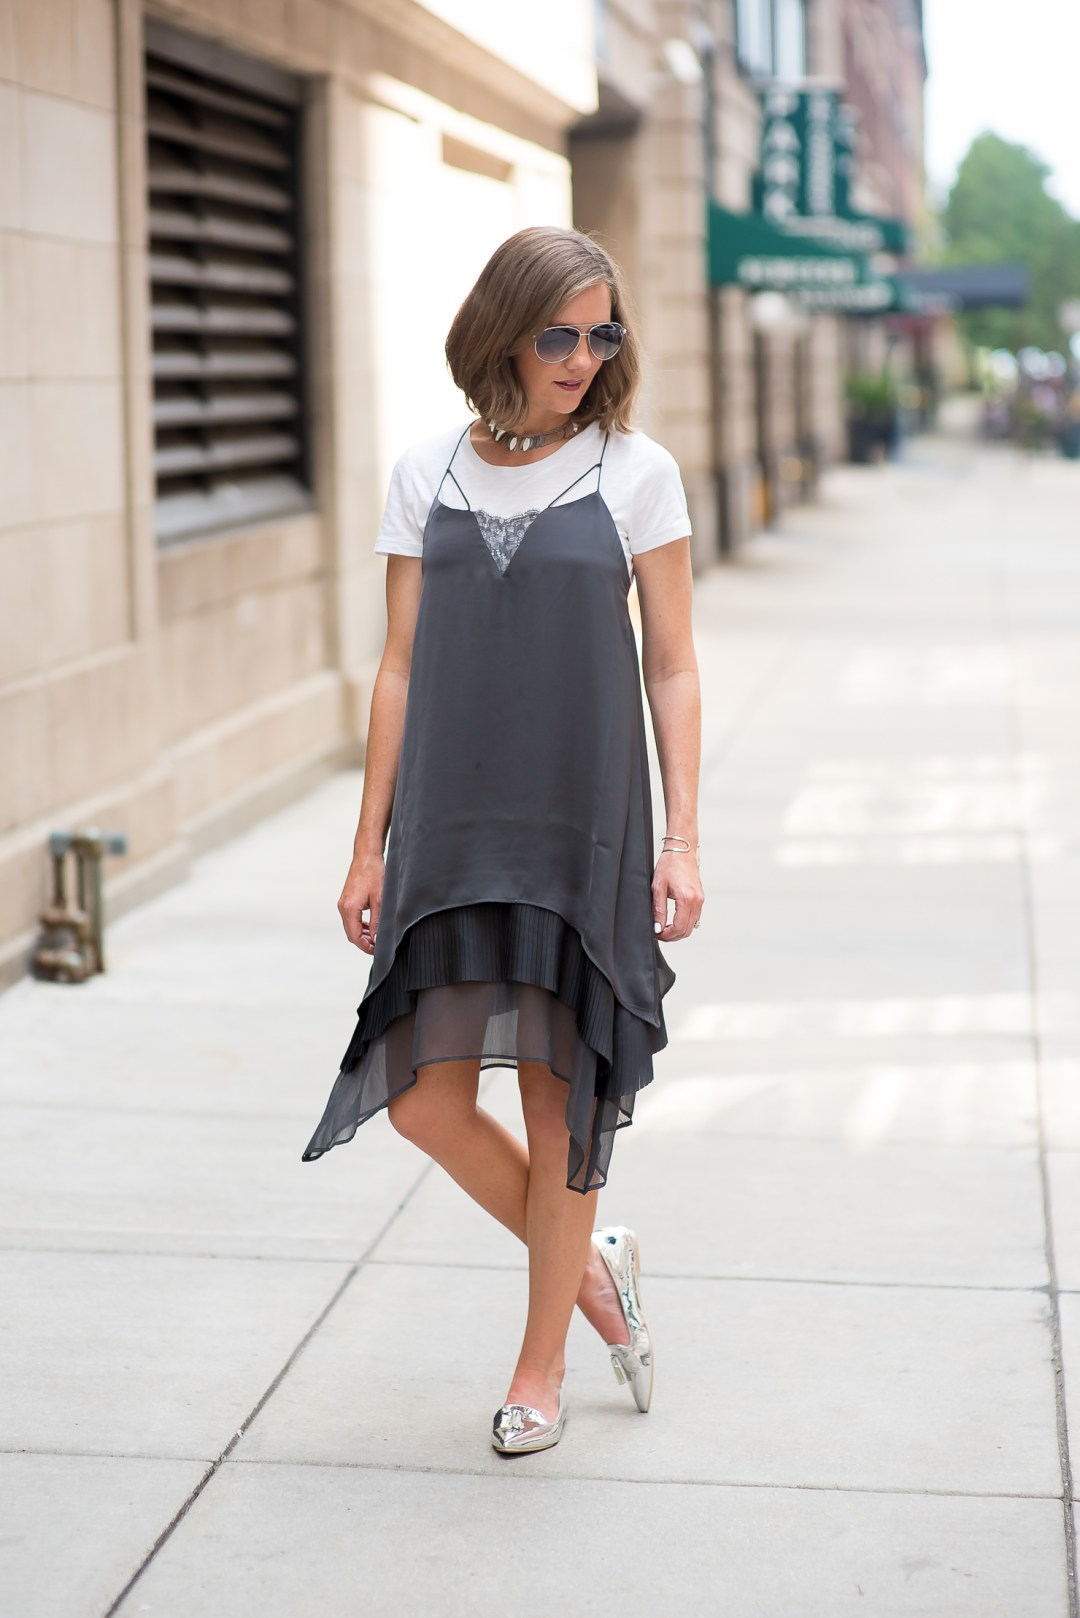 hm-grey-layered-slip-dress-with-lace-inset-slipdress-with -tee-shirt-trend-uncommon-goods-hammered-cuff-pointed-silver-tassel-loafers